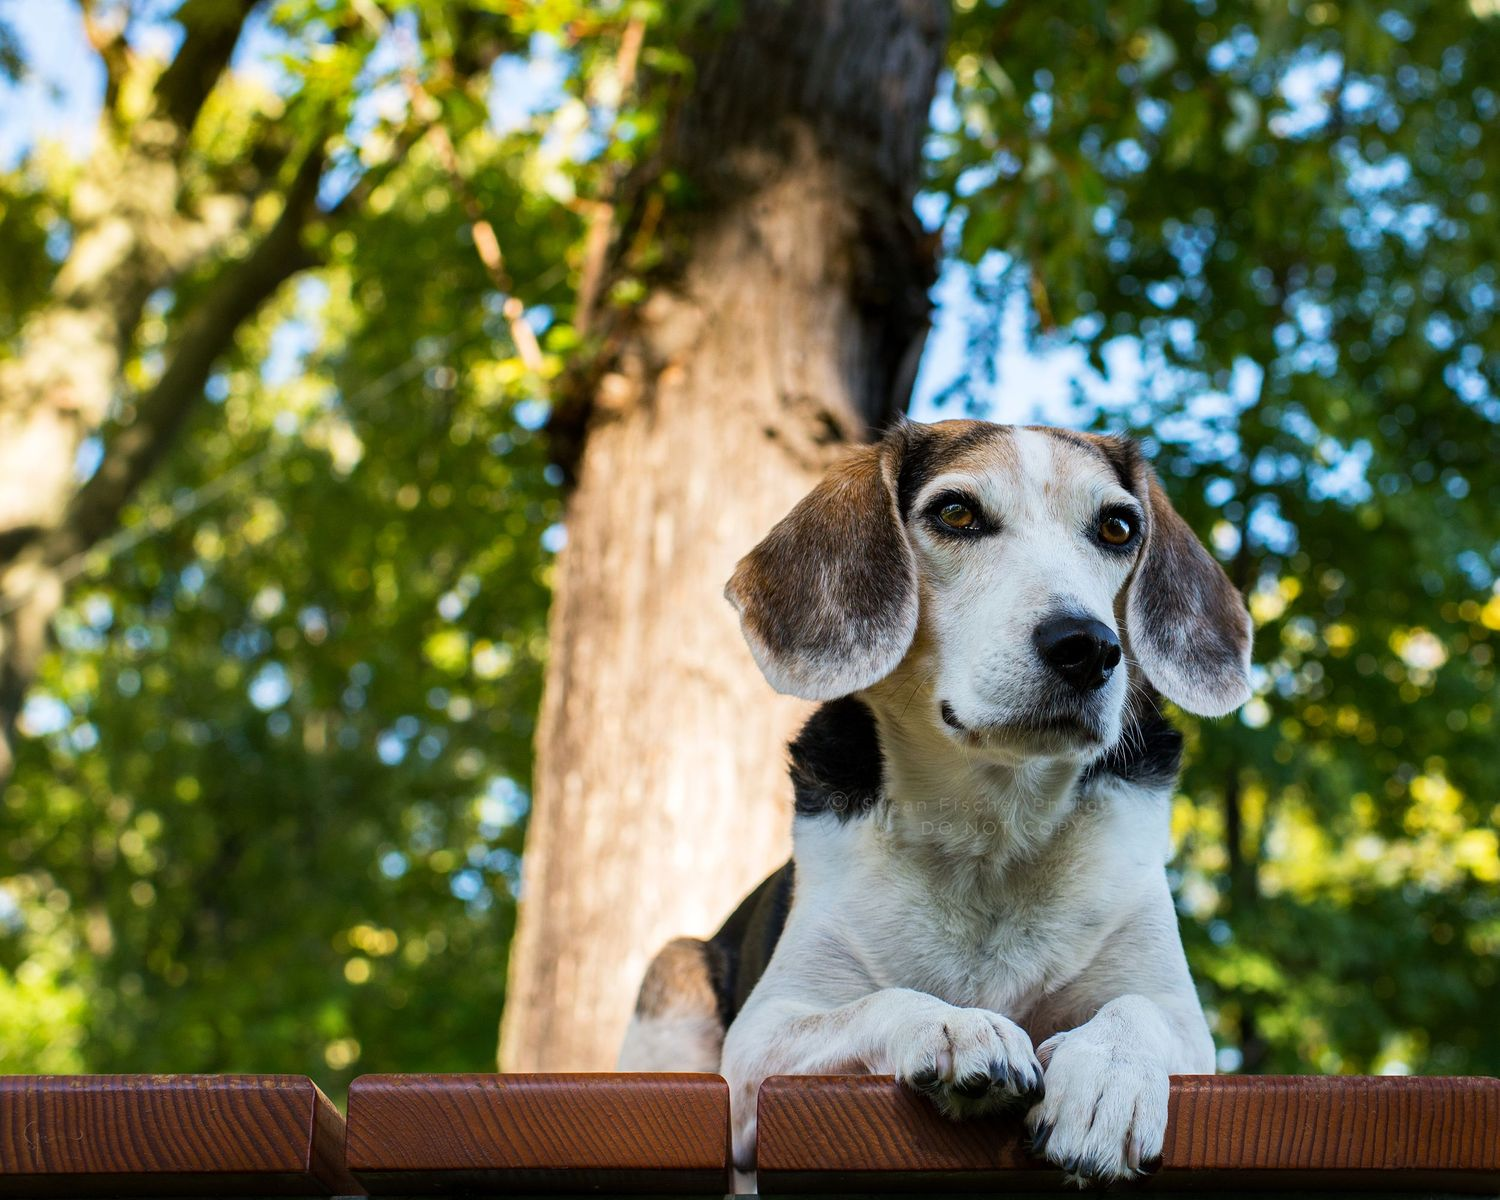 A senior Beagle lying on a picnic table under shade of some trees